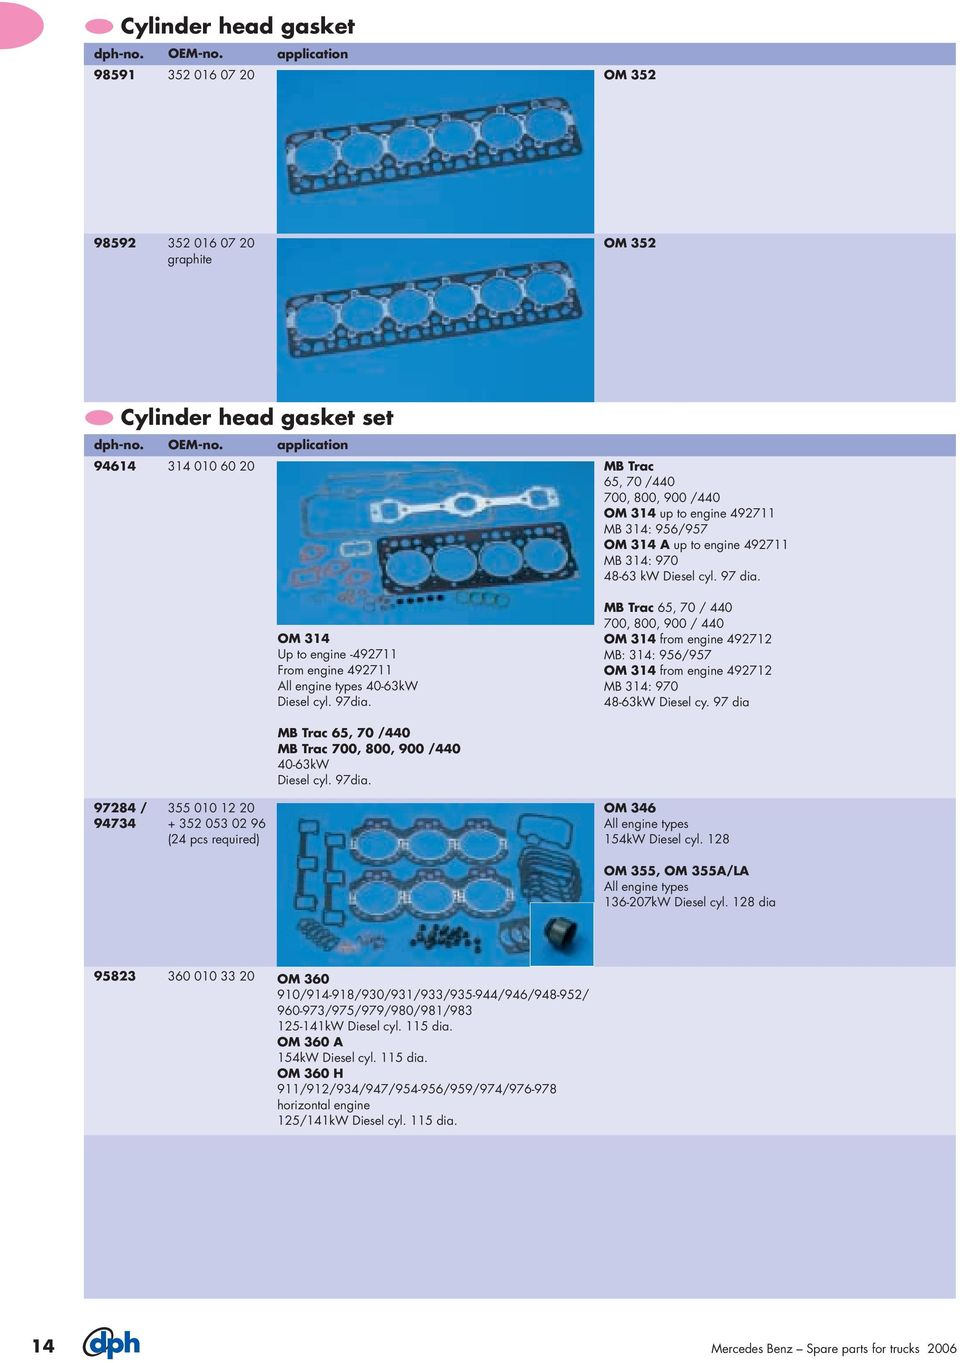 Mercedes benz spare parts for trucks qualitt made by dph germany 65 70 440 700 800 900 440 om 314 from engine fandeluxe Image collections